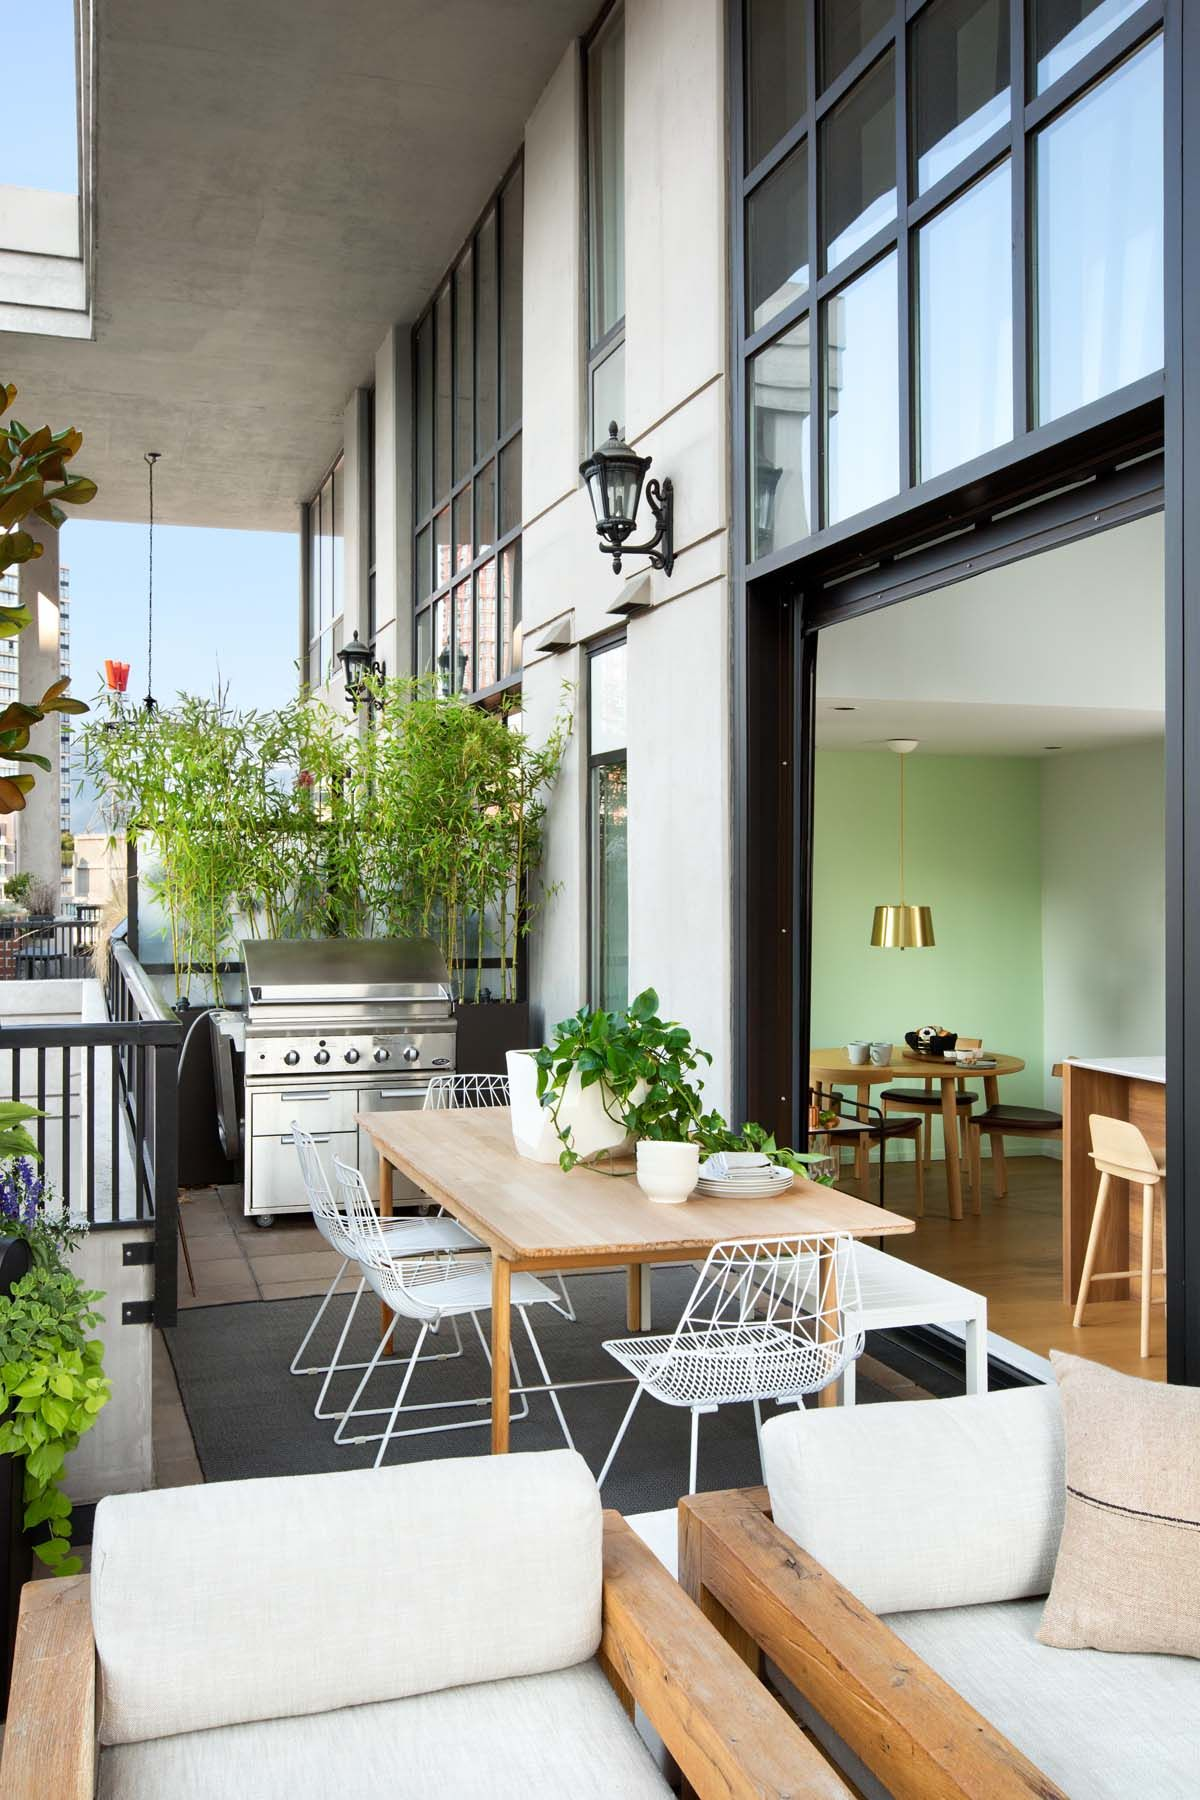 Sleek loft style apartment in Vancouver features a New York vibe